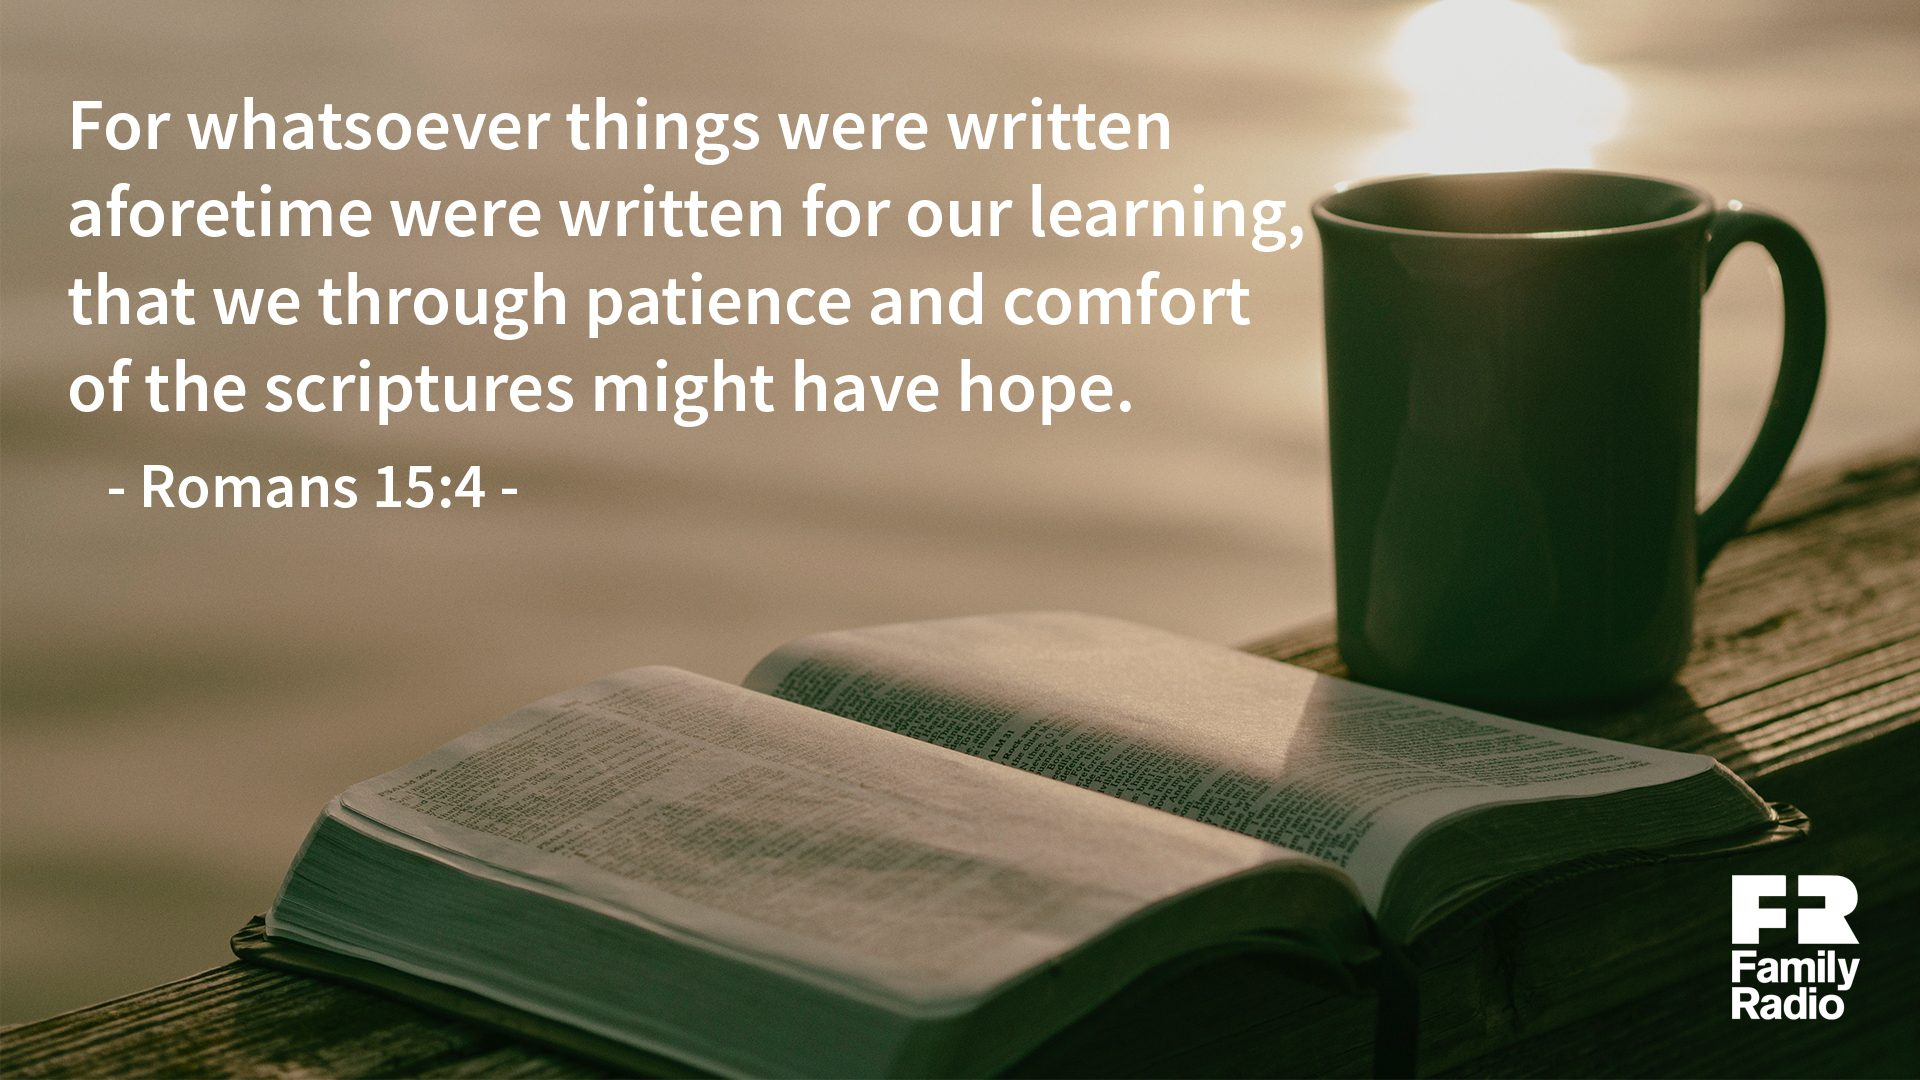 """For whatsoever things were written aforetime were written for our learning that we through patience and comfort of the scriptures might have hope."""